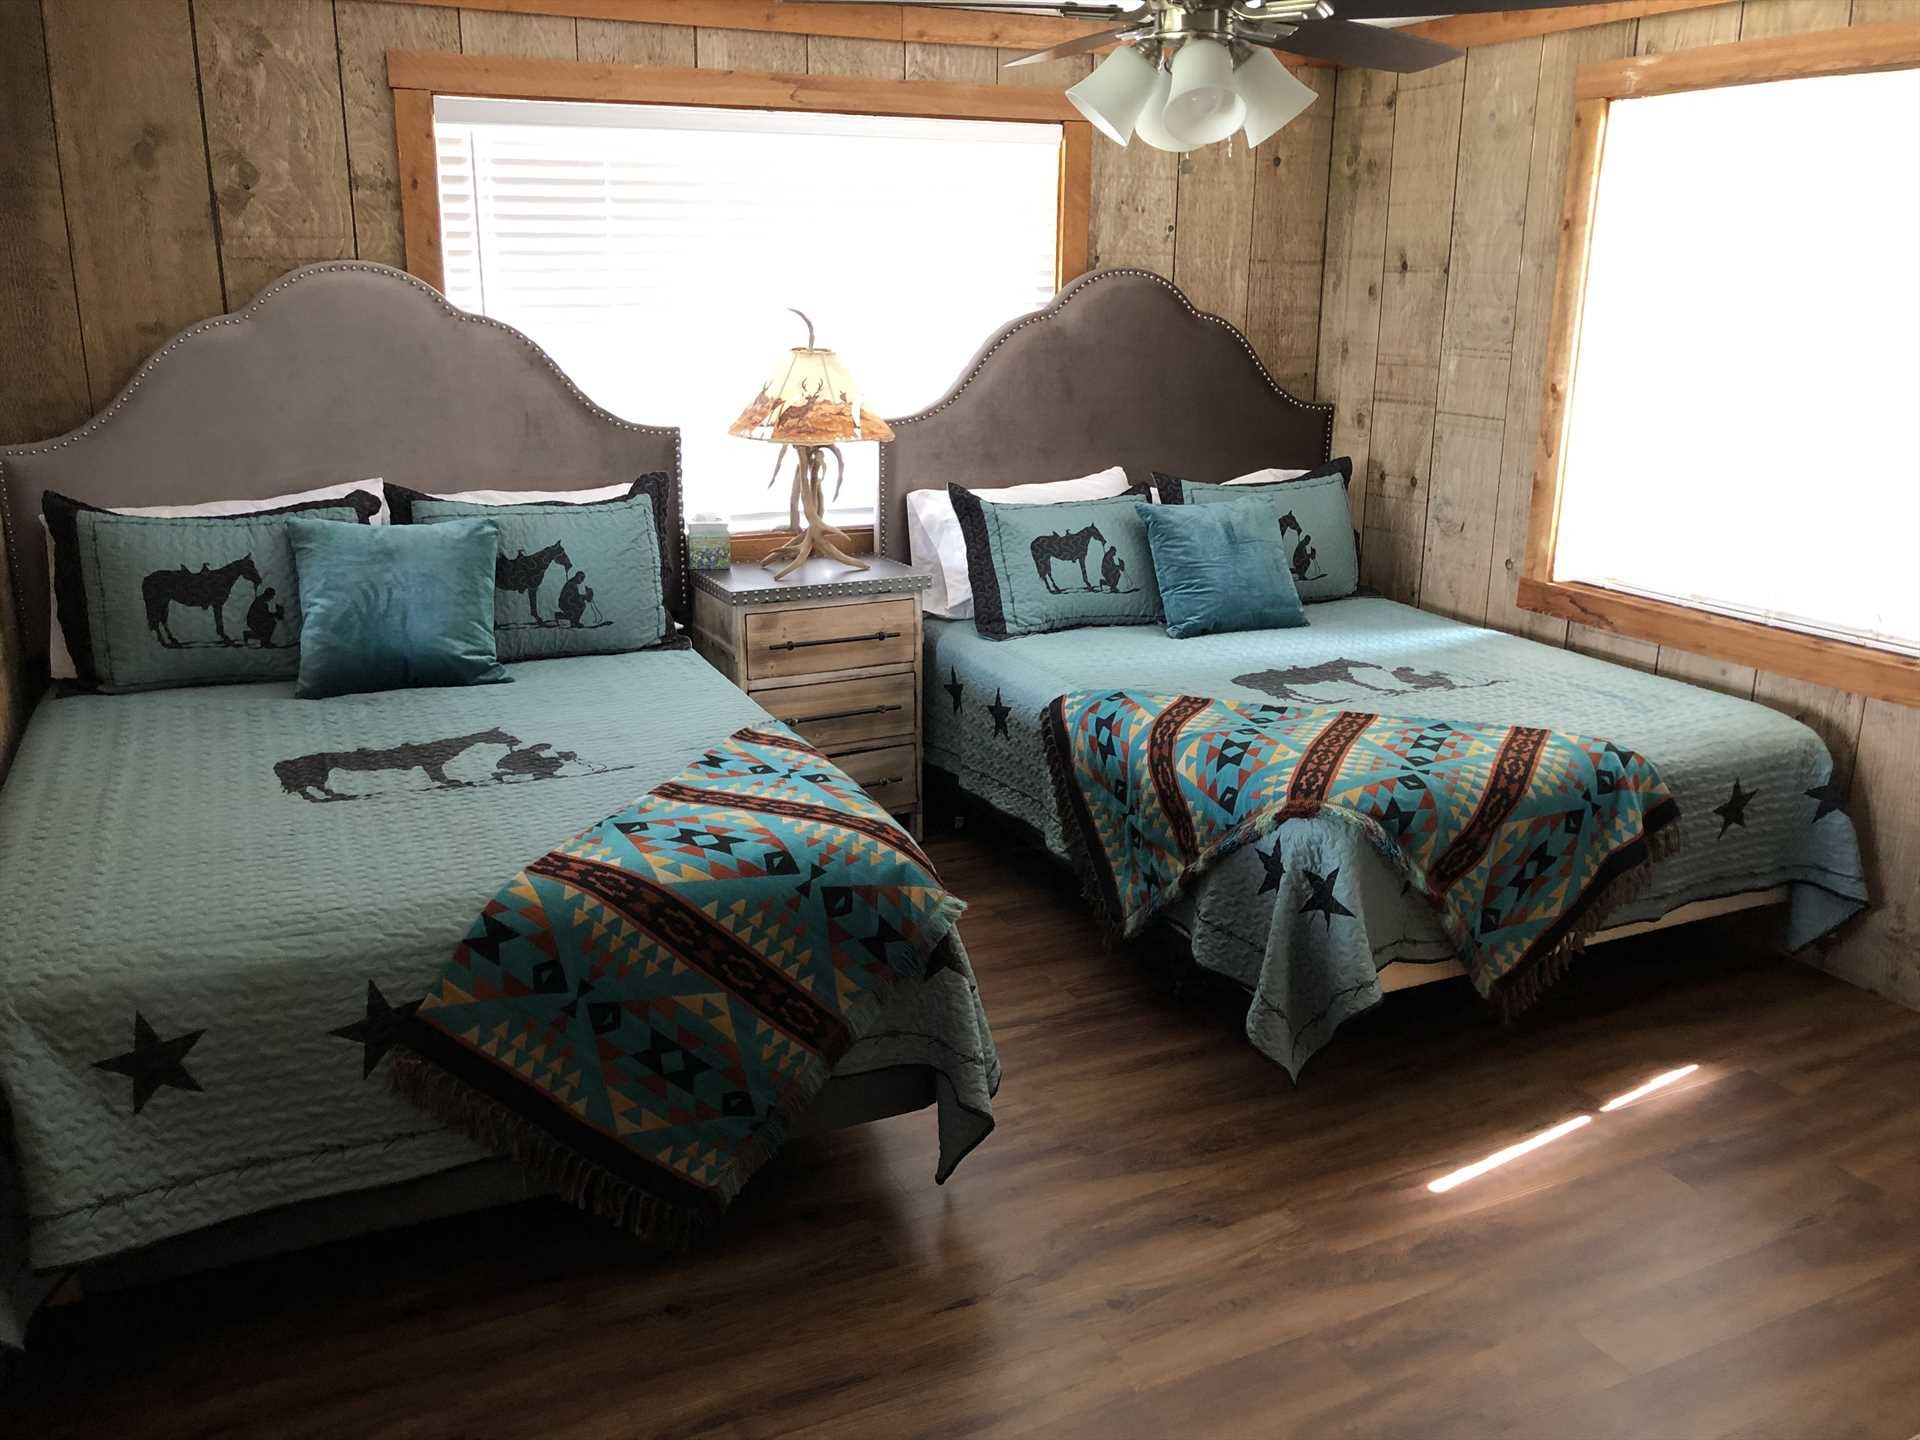 Doze like royalty in the two roomy queen beds in the second bedroom!